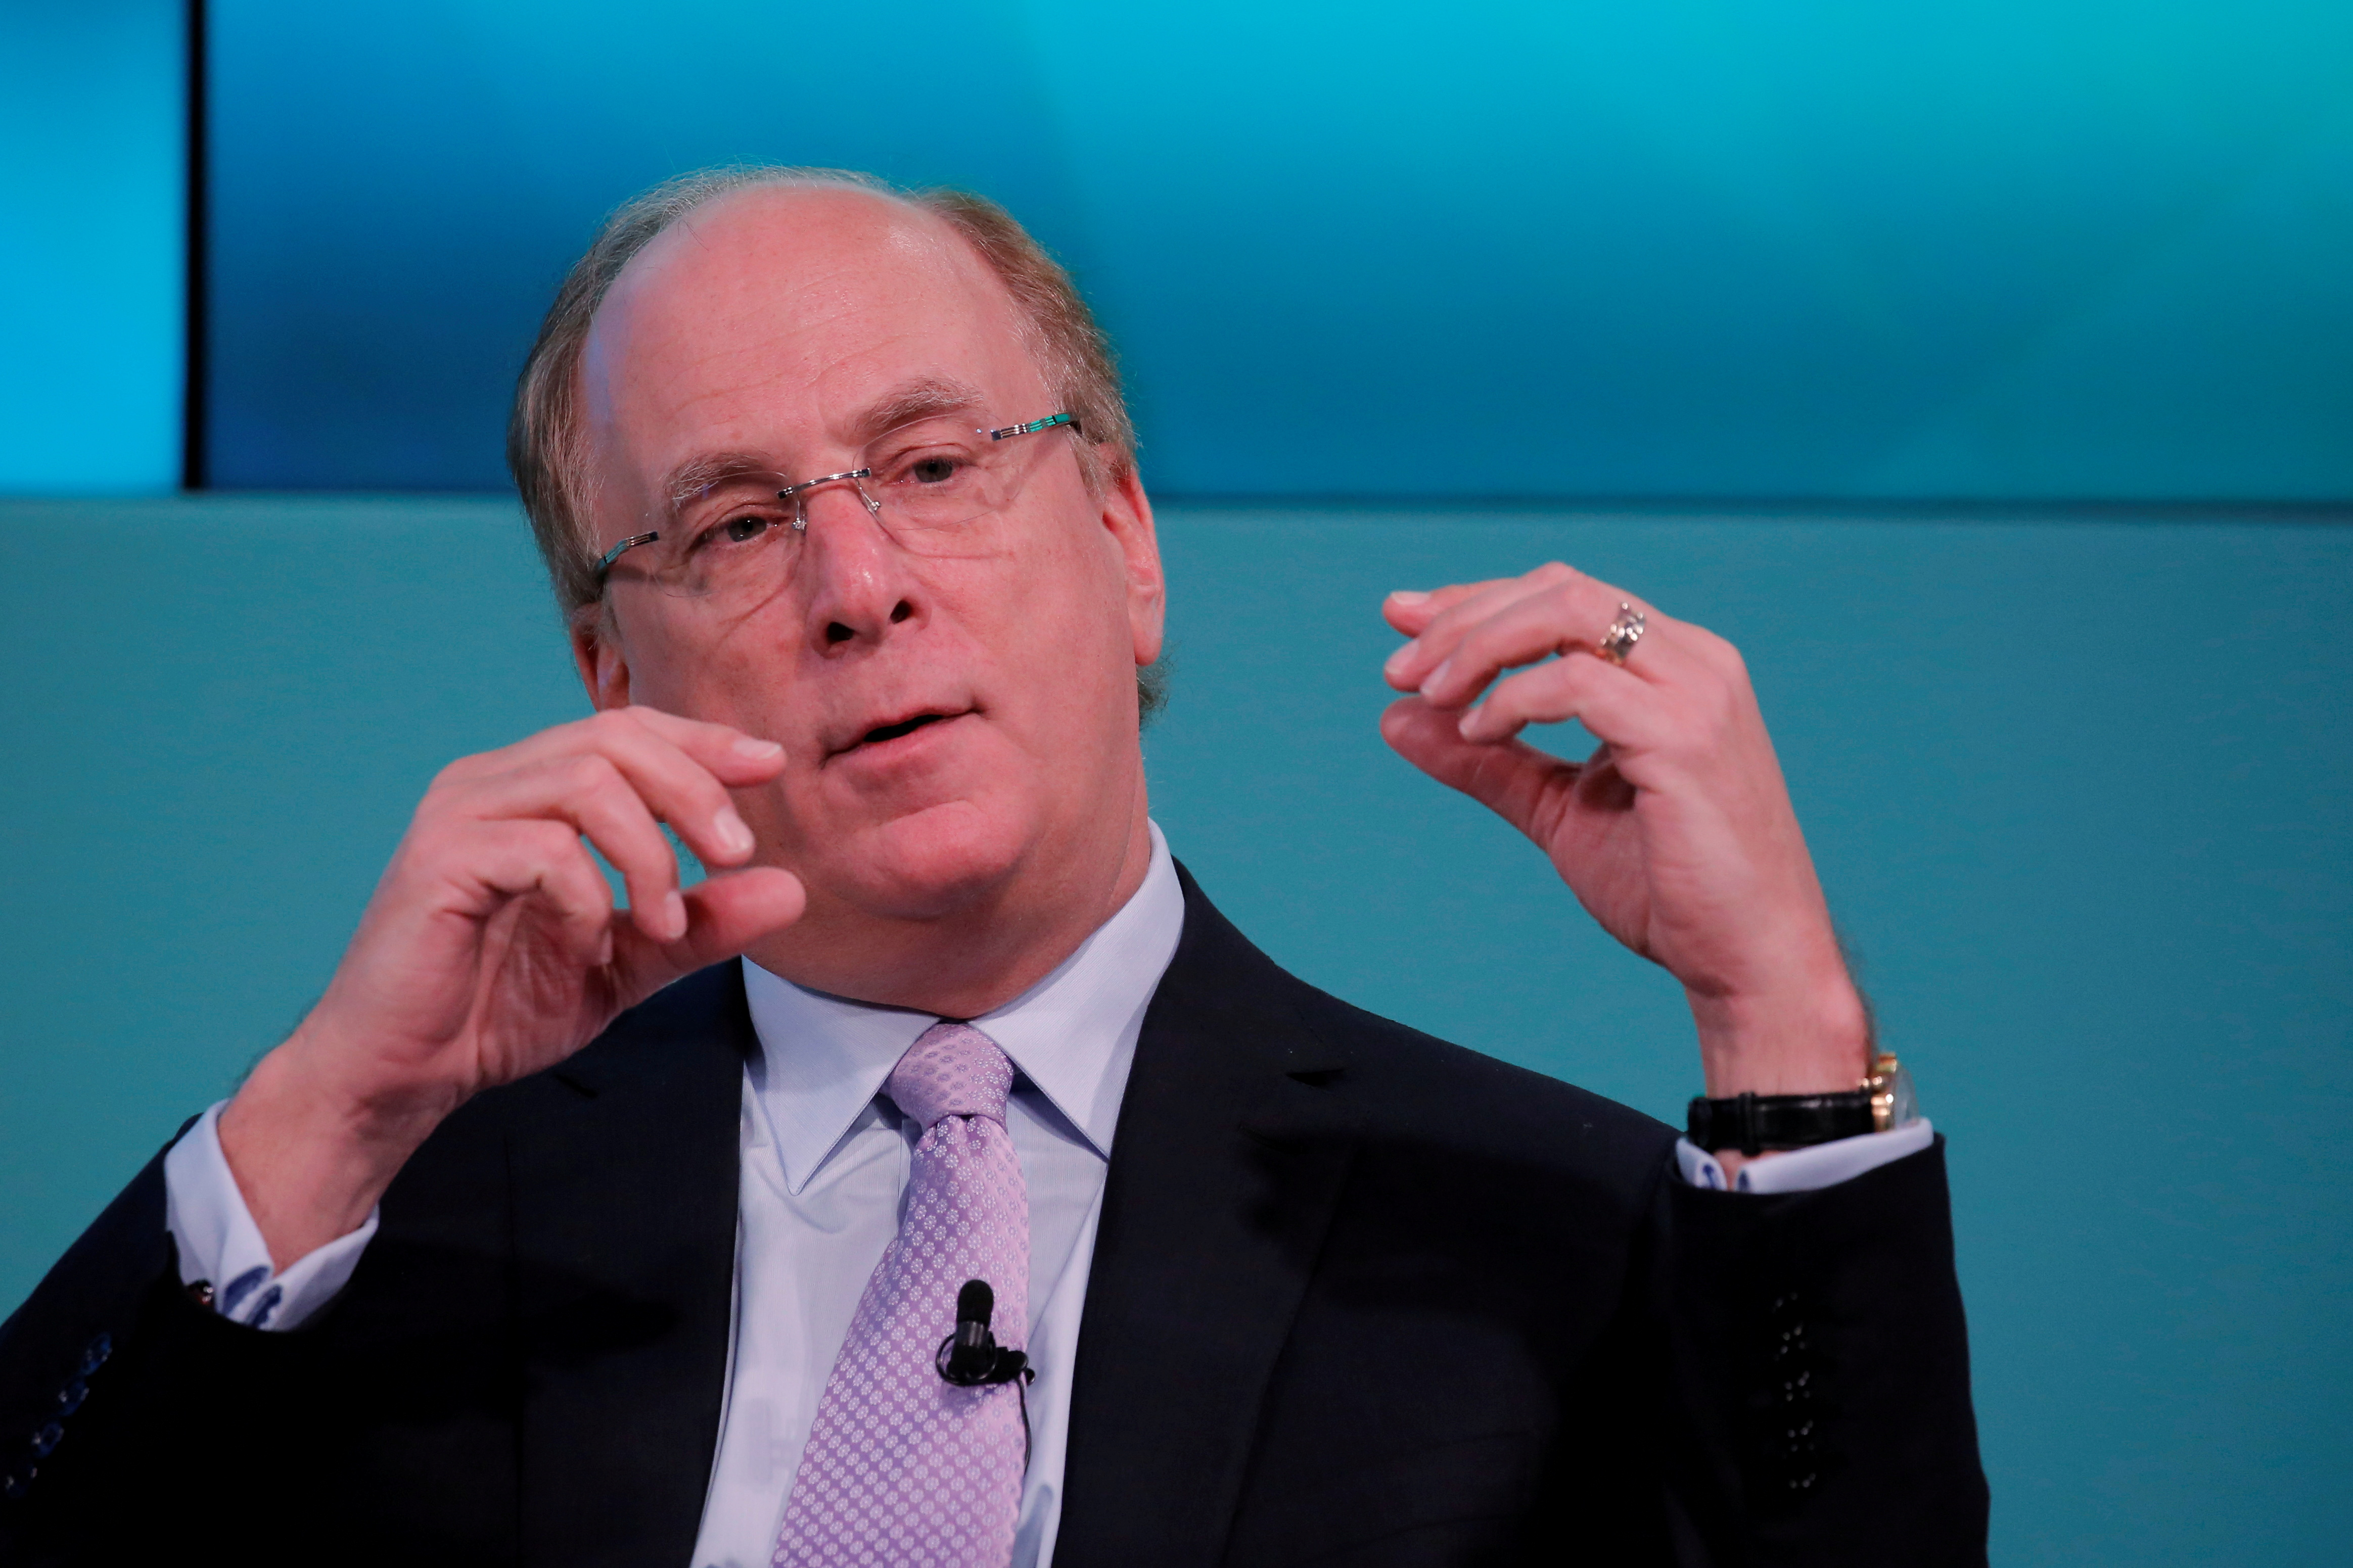 Larry Fink, Chief Executive Officer of BlackRock, takes part in the Yahoo Finance All Markets Summit in New York, U.S., February 8, 2017. REUTERS/Lucas Jackson/File Photo